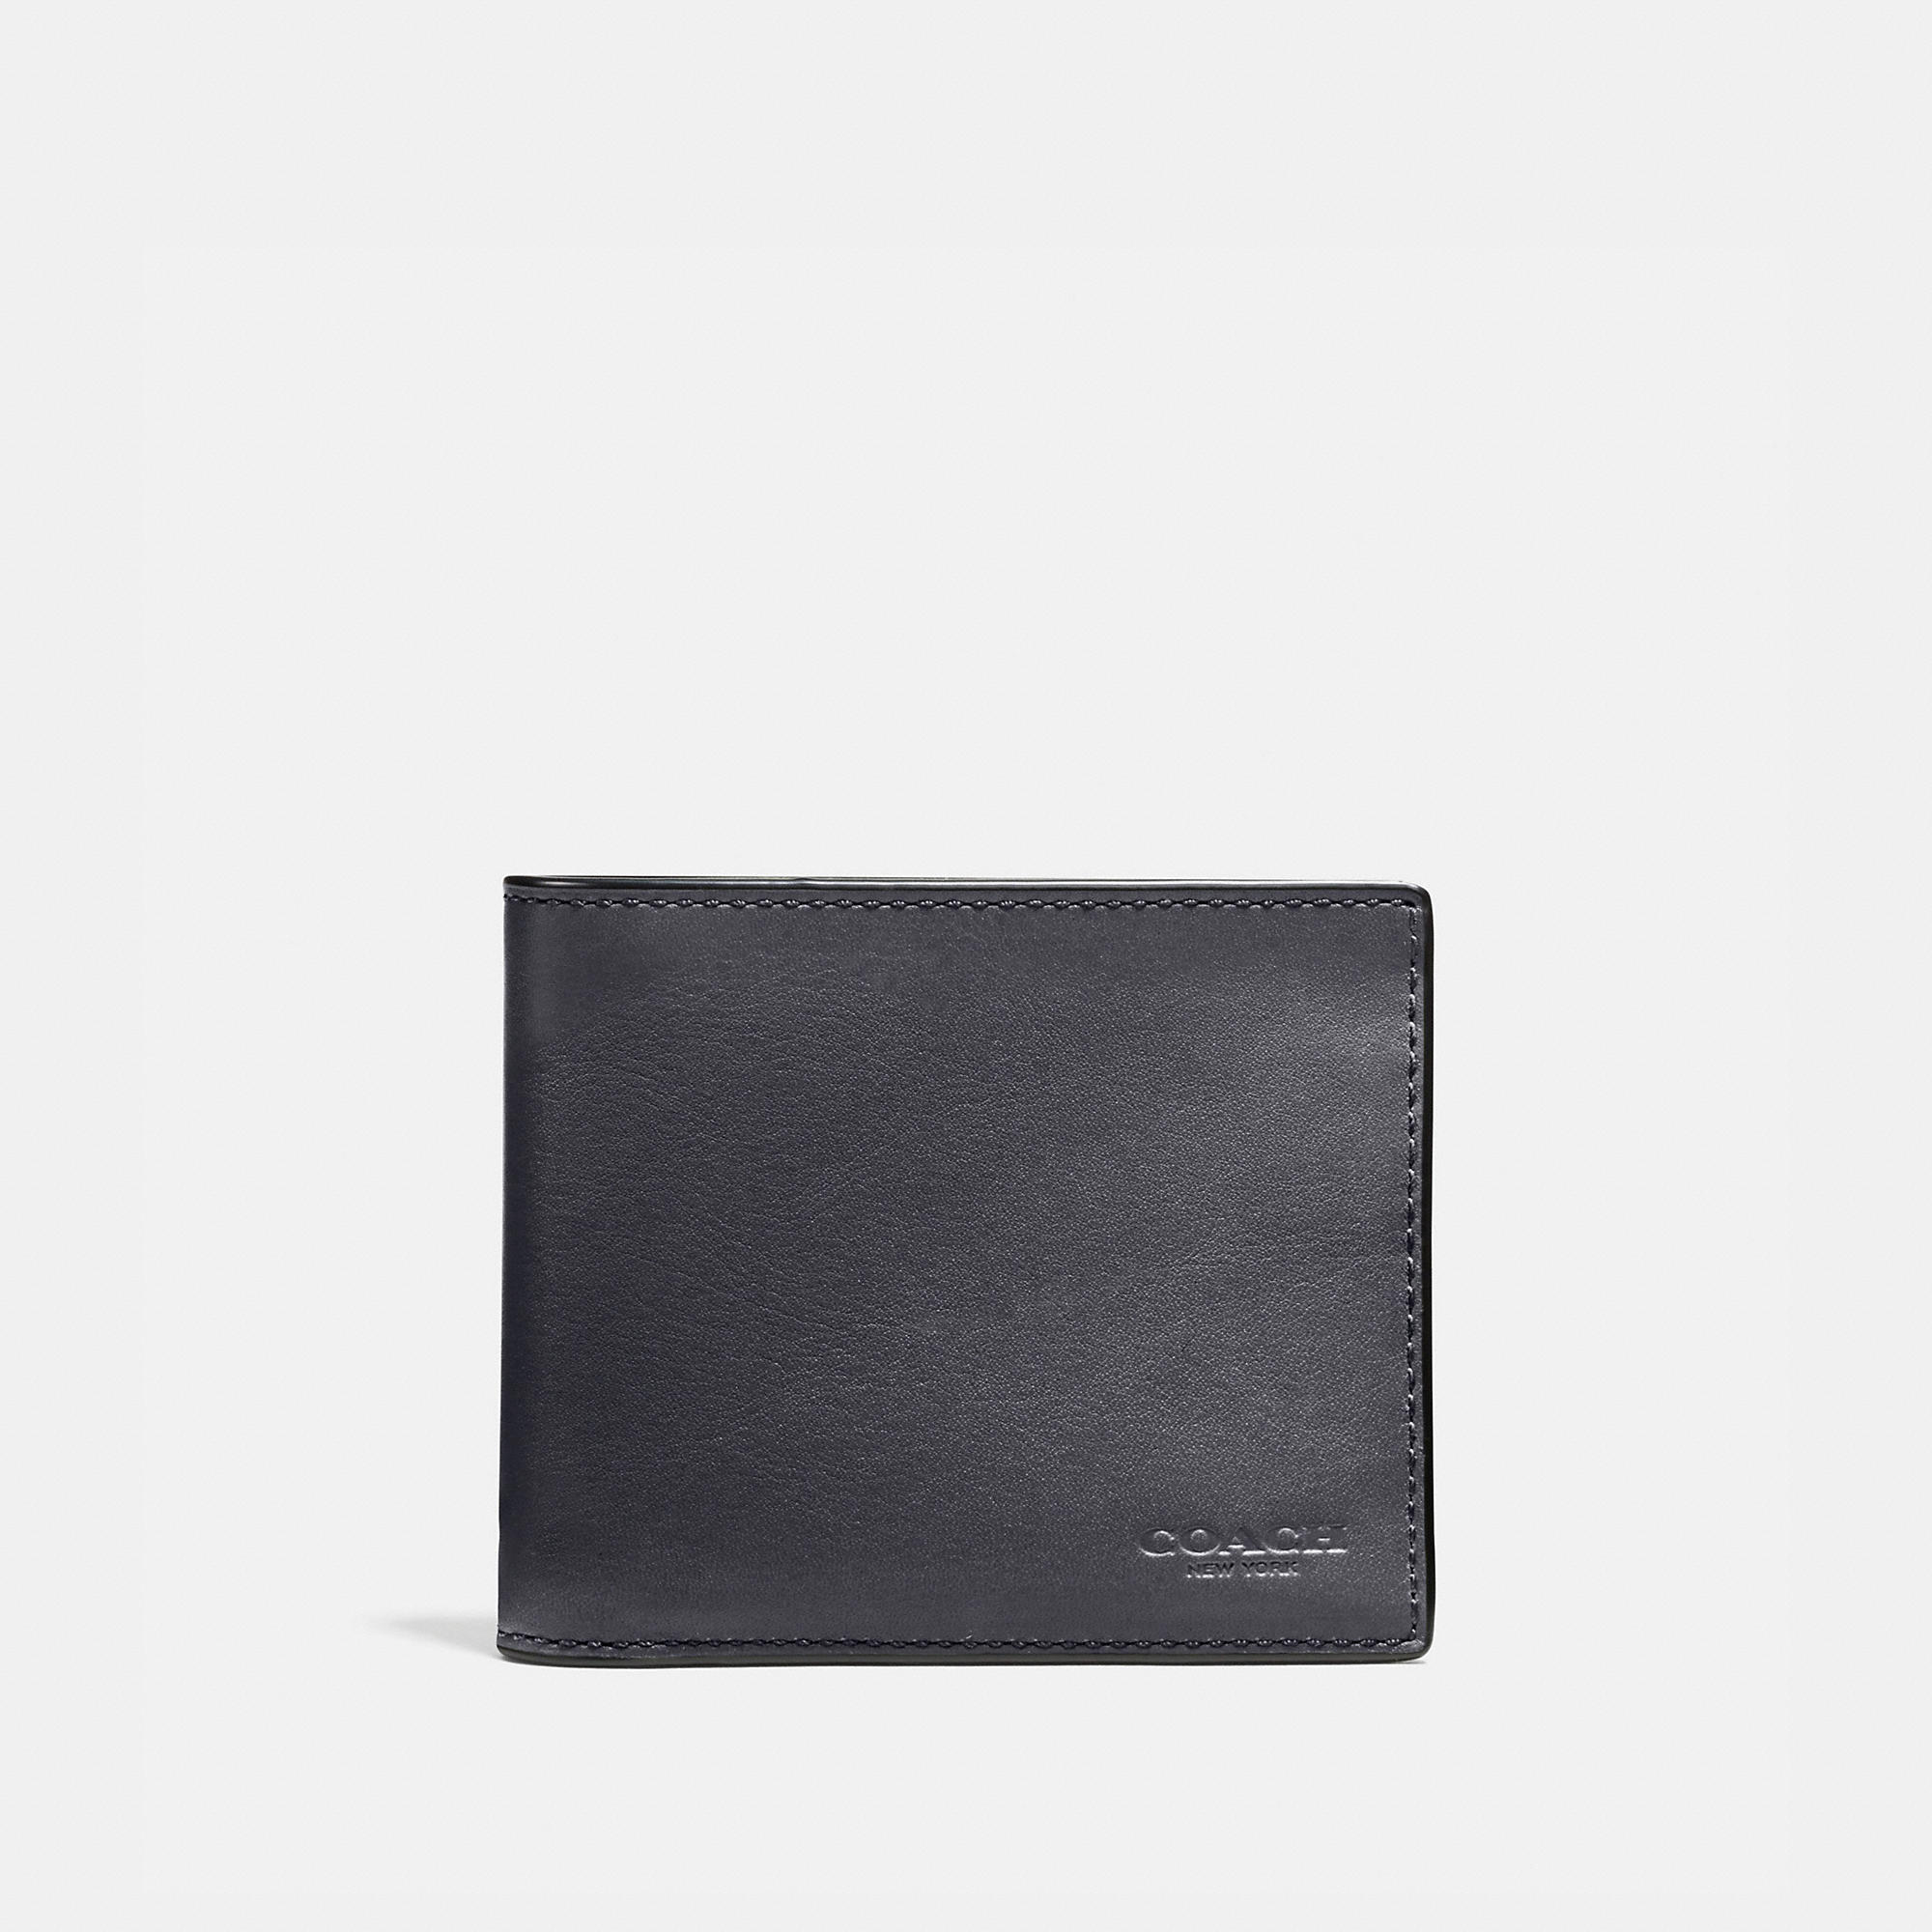 Coach 3-in-1 Wallet In Burnished Sport Calf Leather